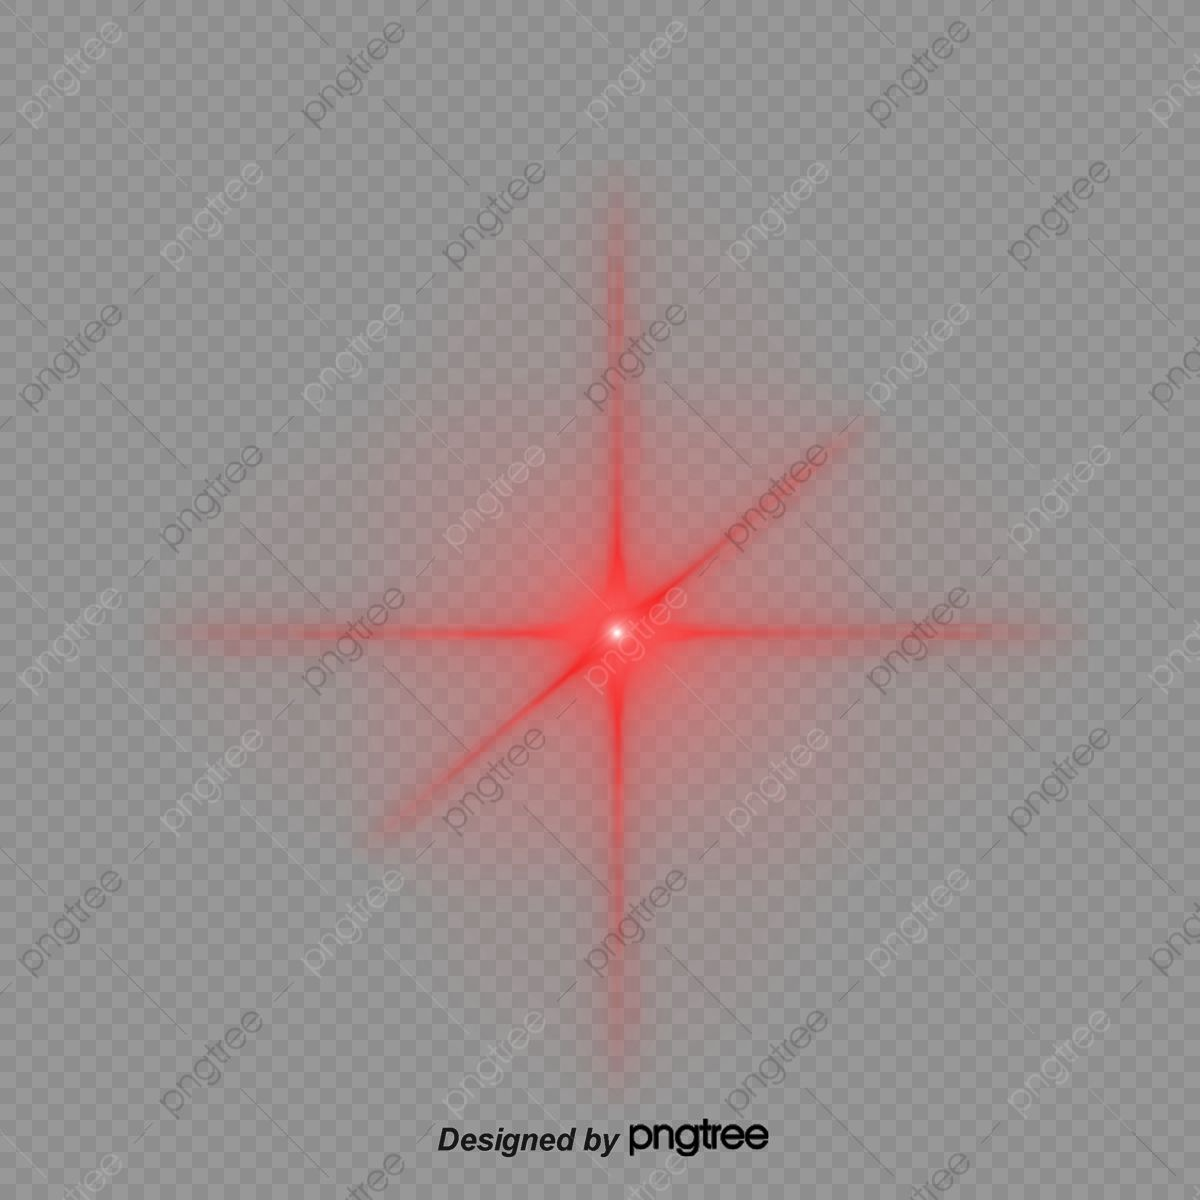 Red Star Light Effect Star Clipart Gules Red Starlight Png Transparent Clipart Image And Psd File For Free Download In 2021 Clip Art Star Clipart Red Christmas Background